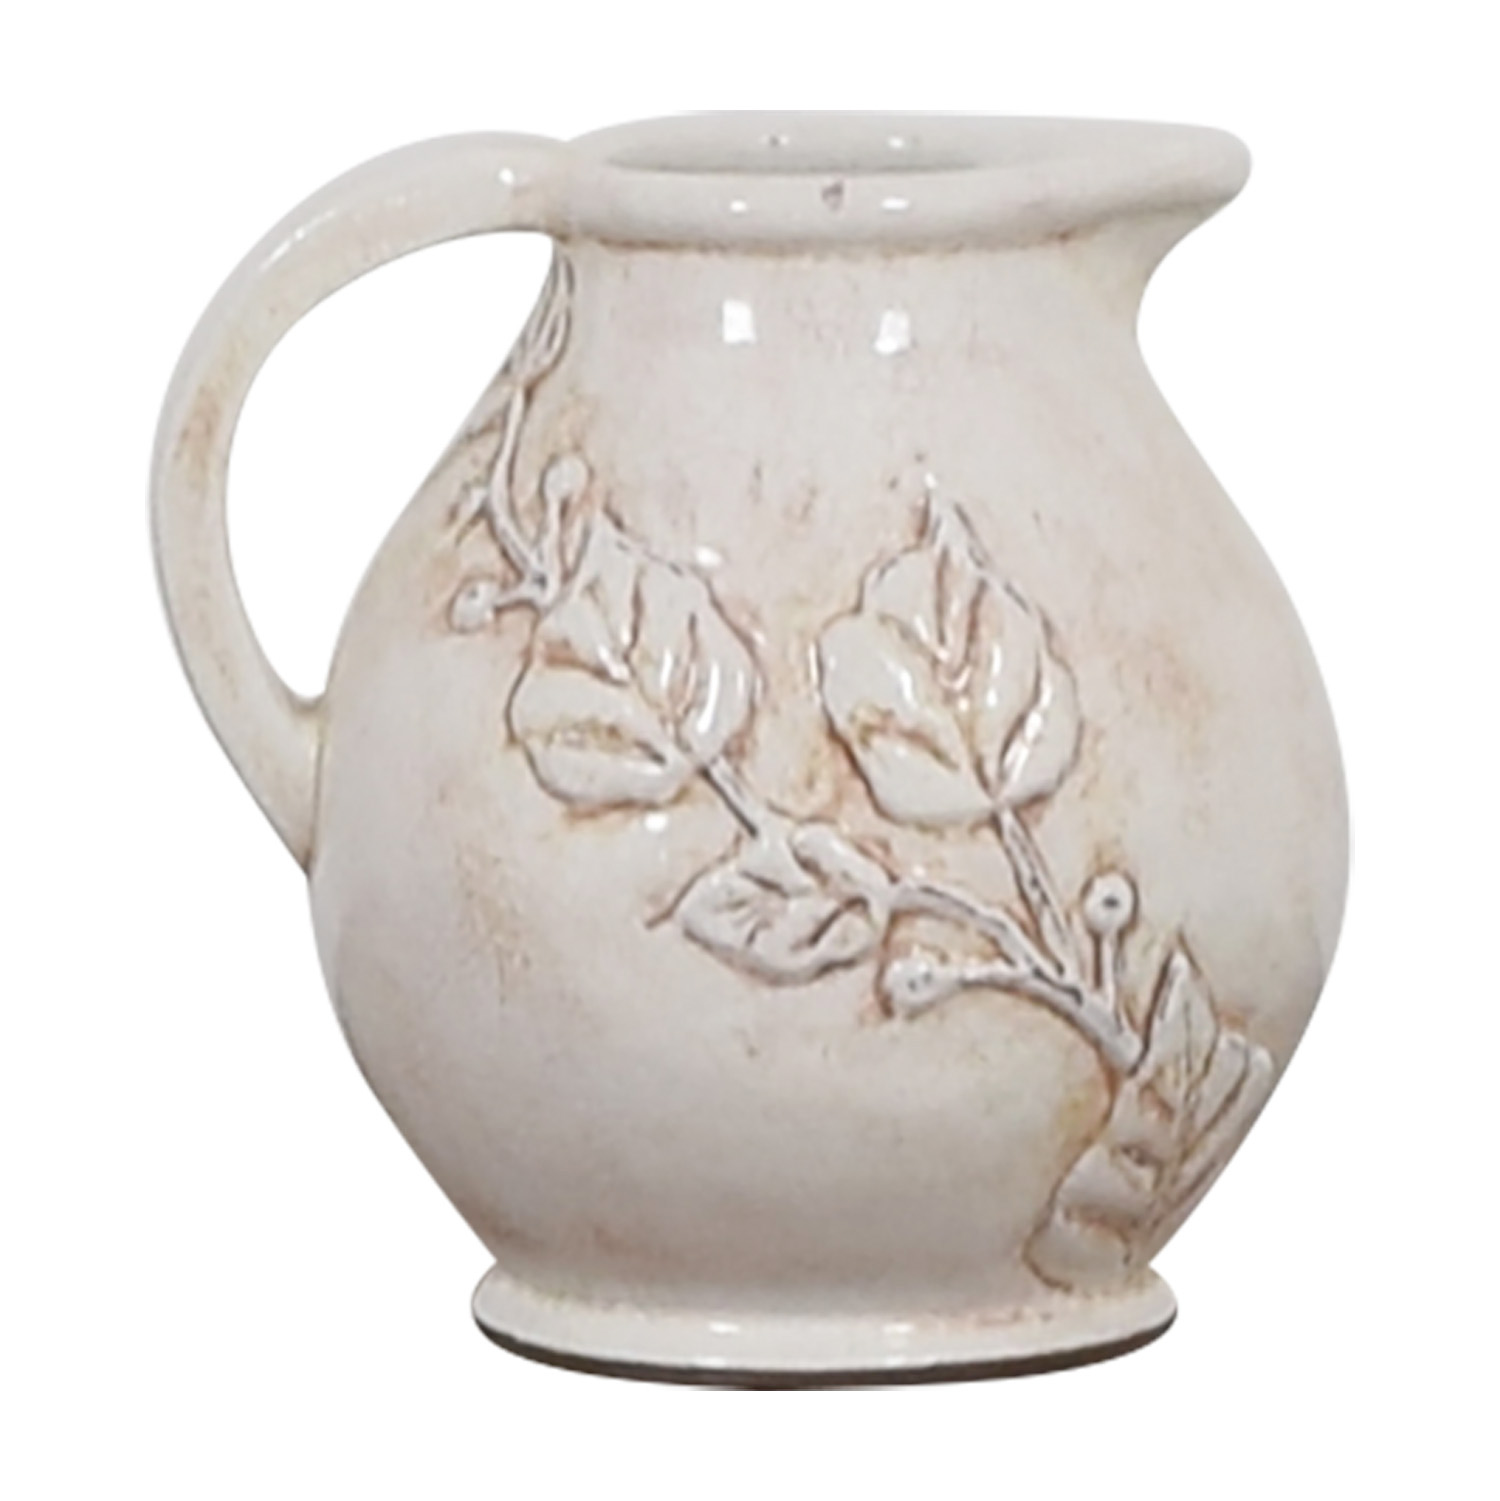 Pottery Barn Pottery Barn Pitcher Vase coupon